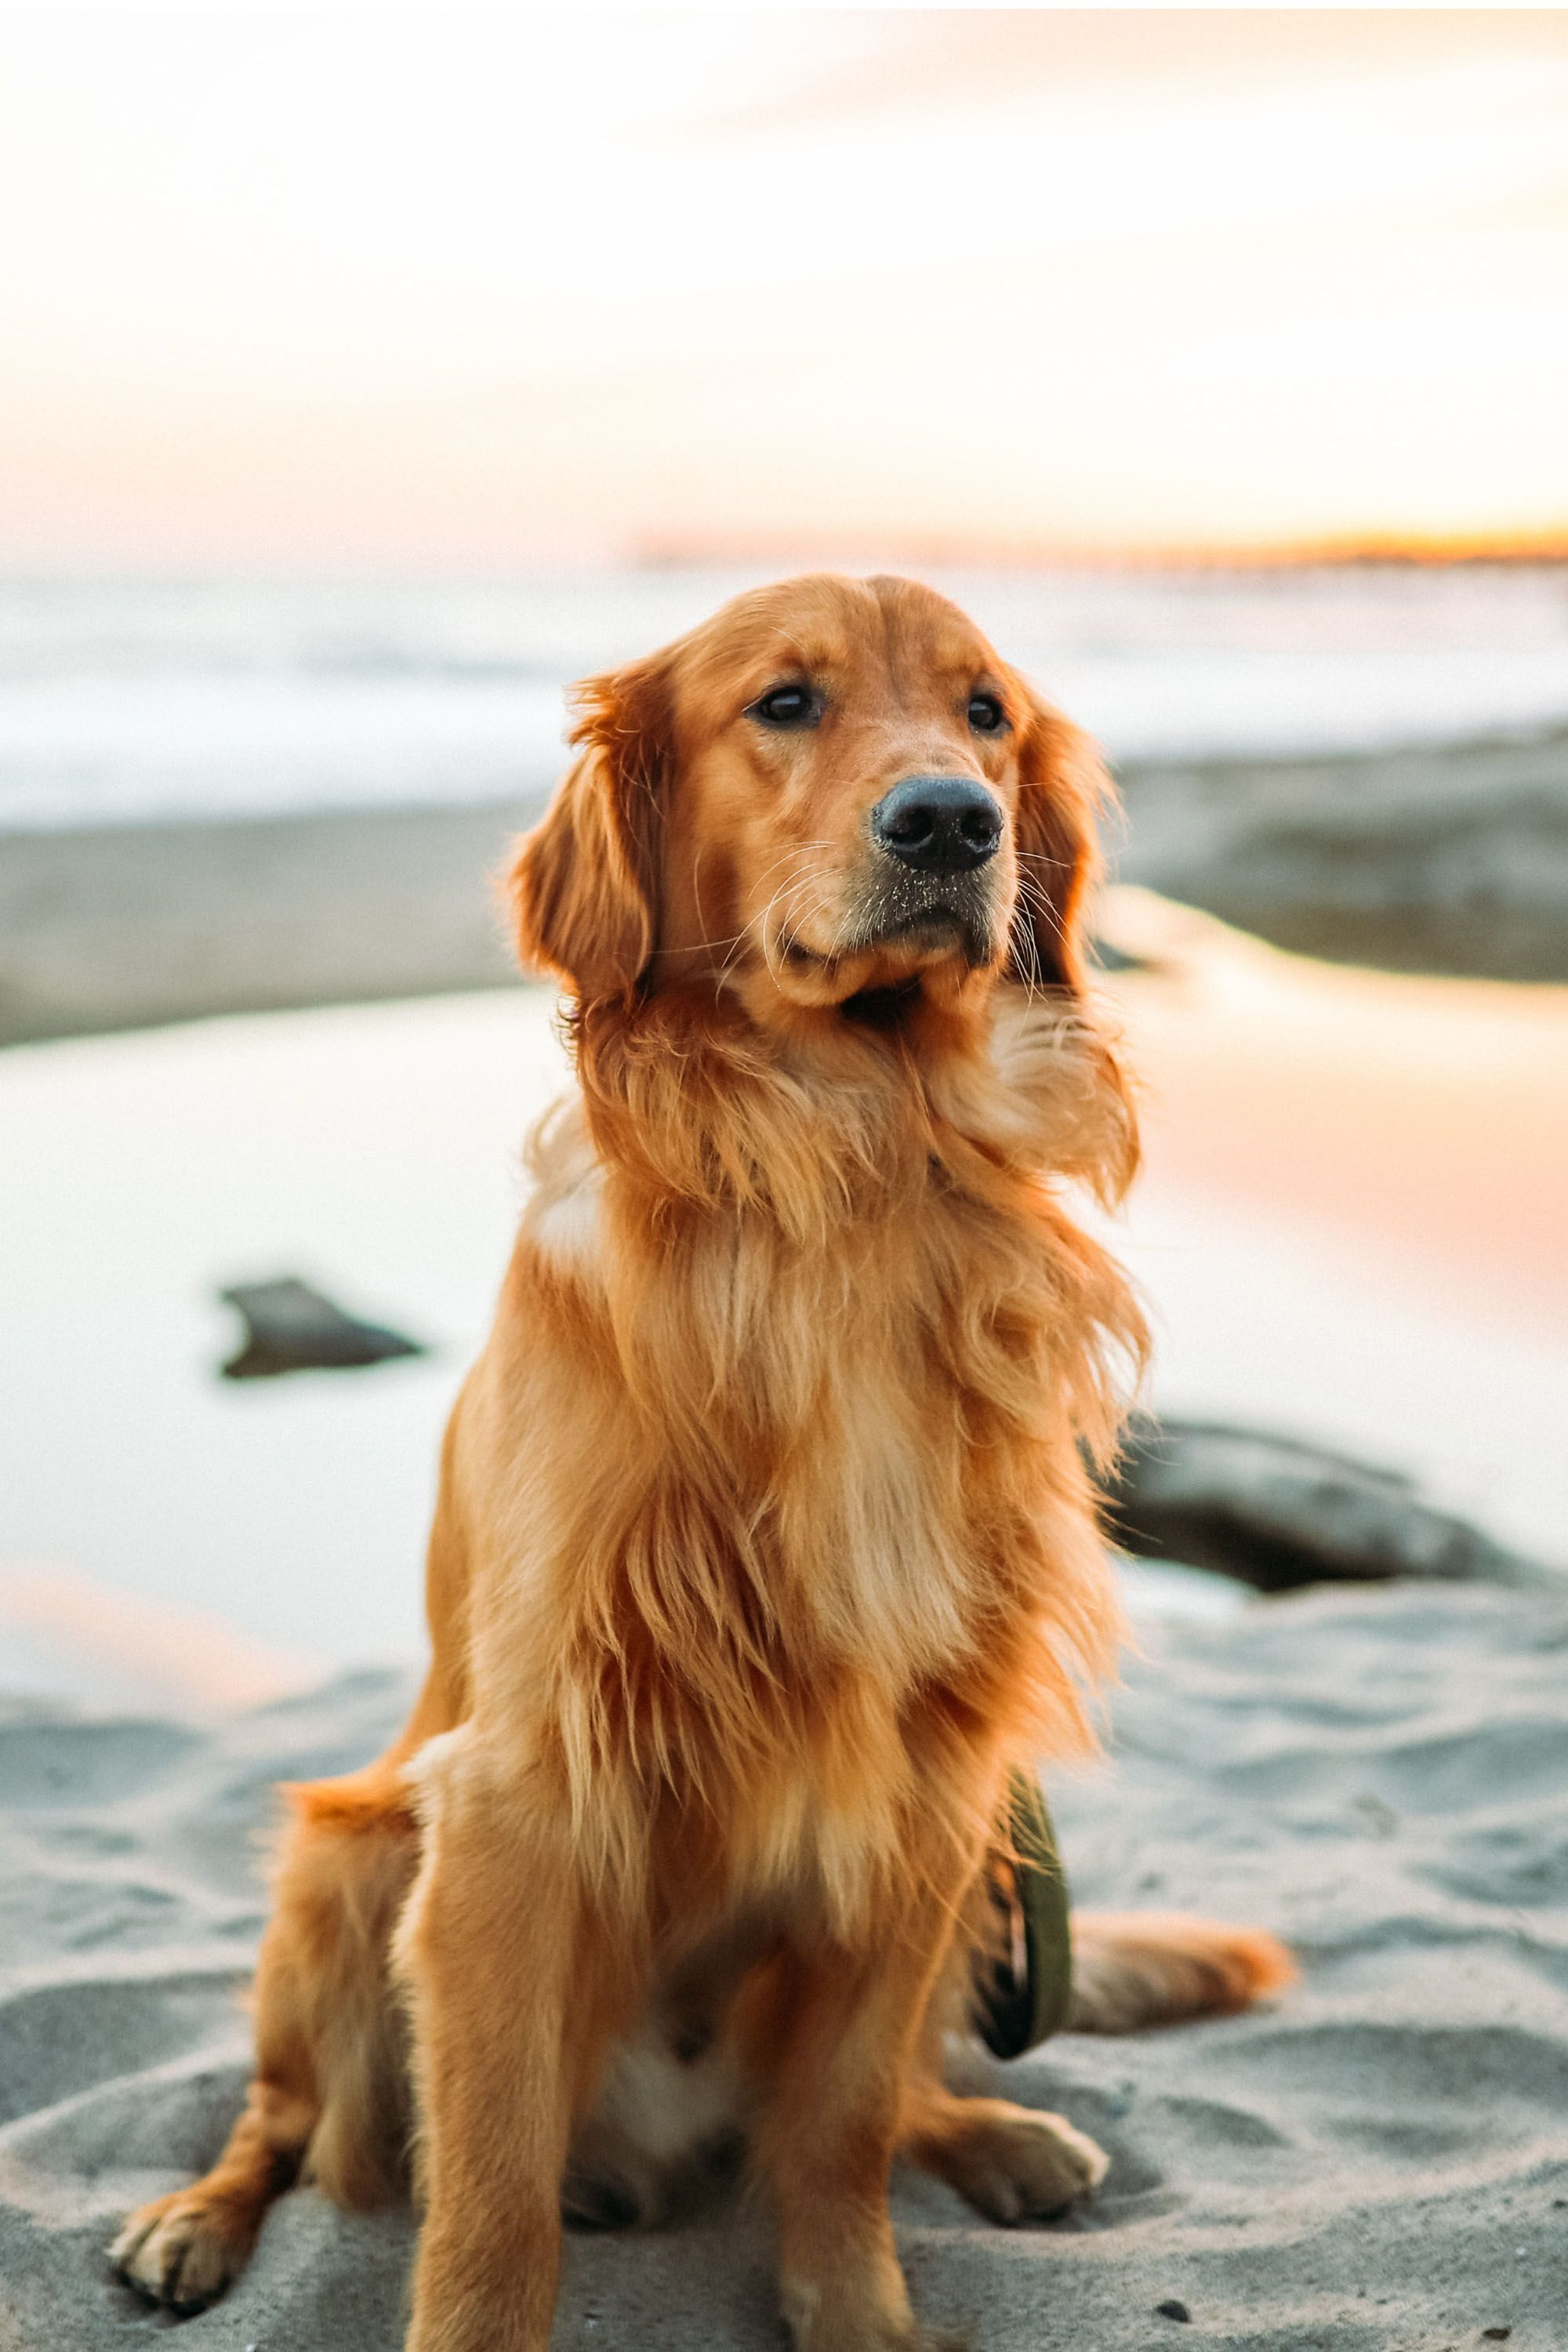 The Truth About Dog Sunscreen In 2020 Cute Dog Wallpaper Cute Dog Pictures Dog Wallpaper